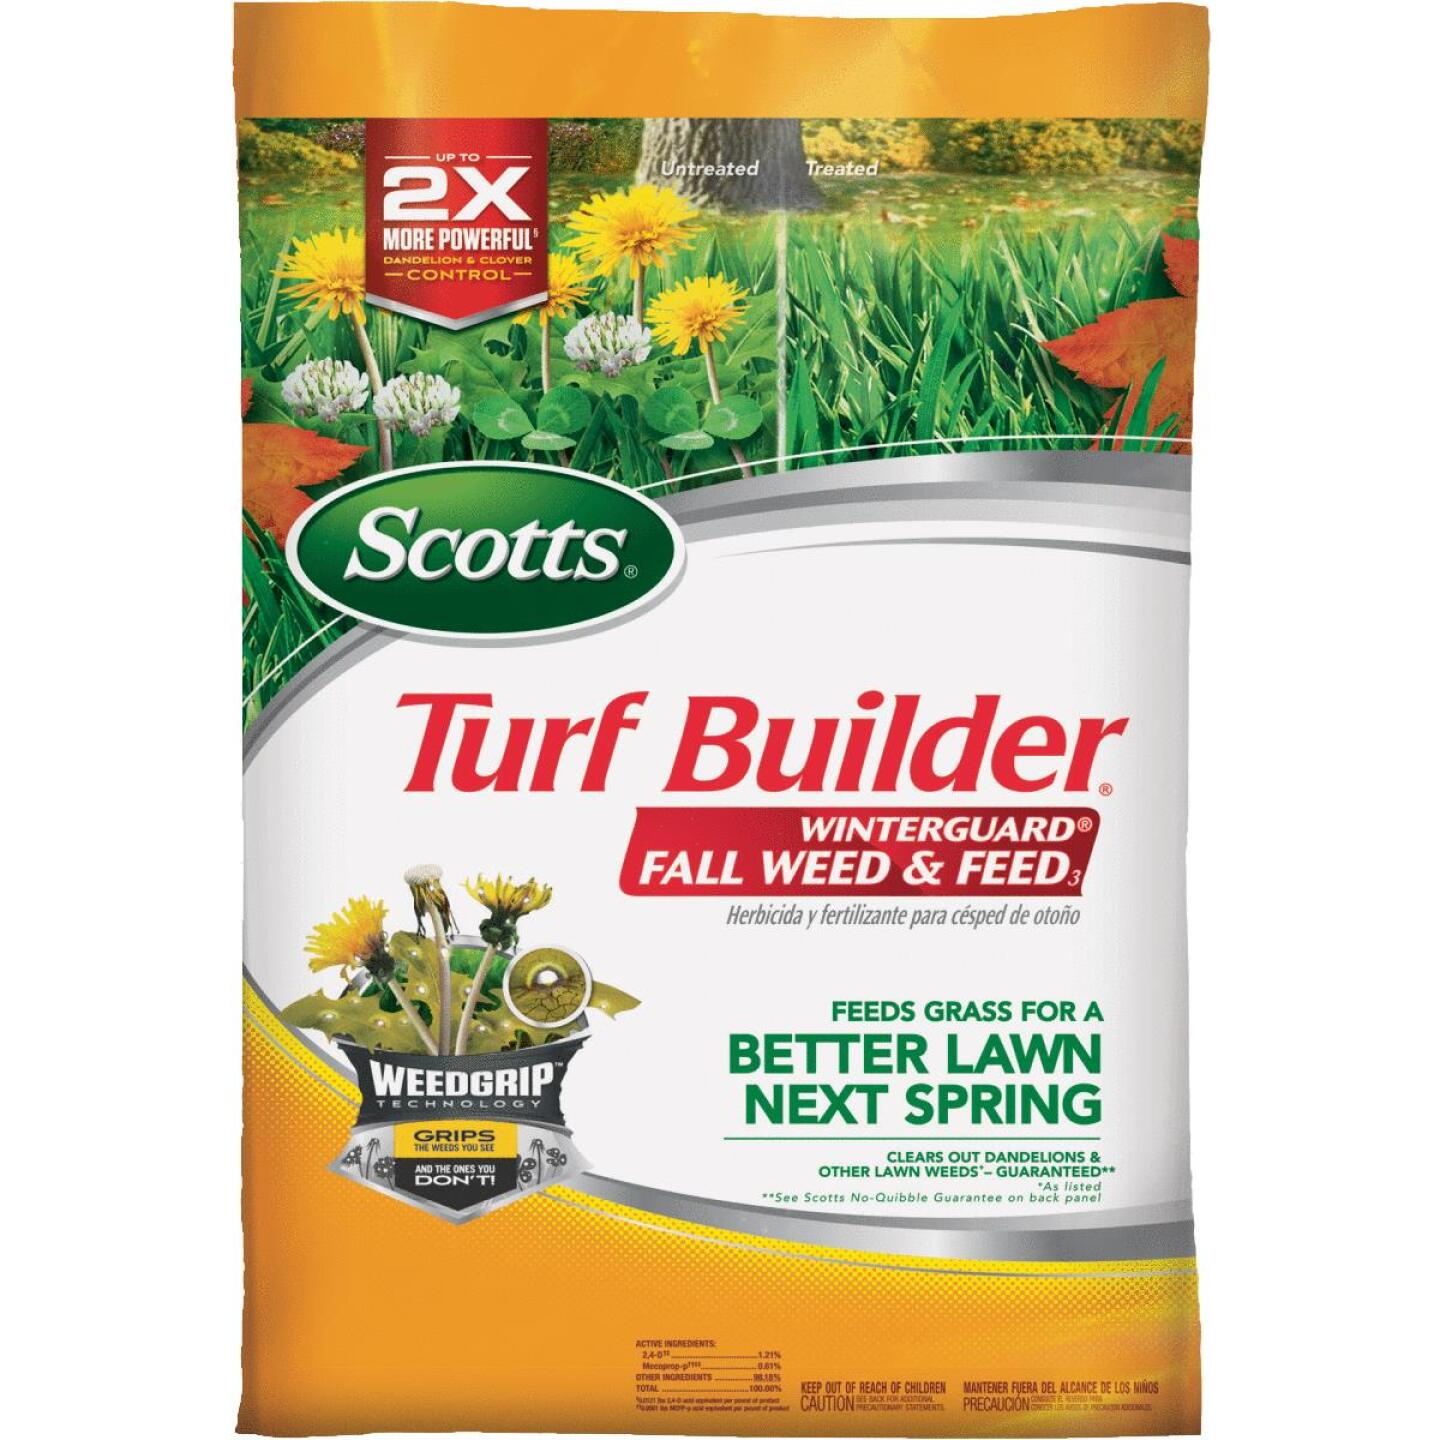 Scotts Turf Builder WinterGuard Weed & Feed 14.29 Lb. 5000 Sq. Ft. 28-0-6 Winterizer Fall Fertilizer Image 1